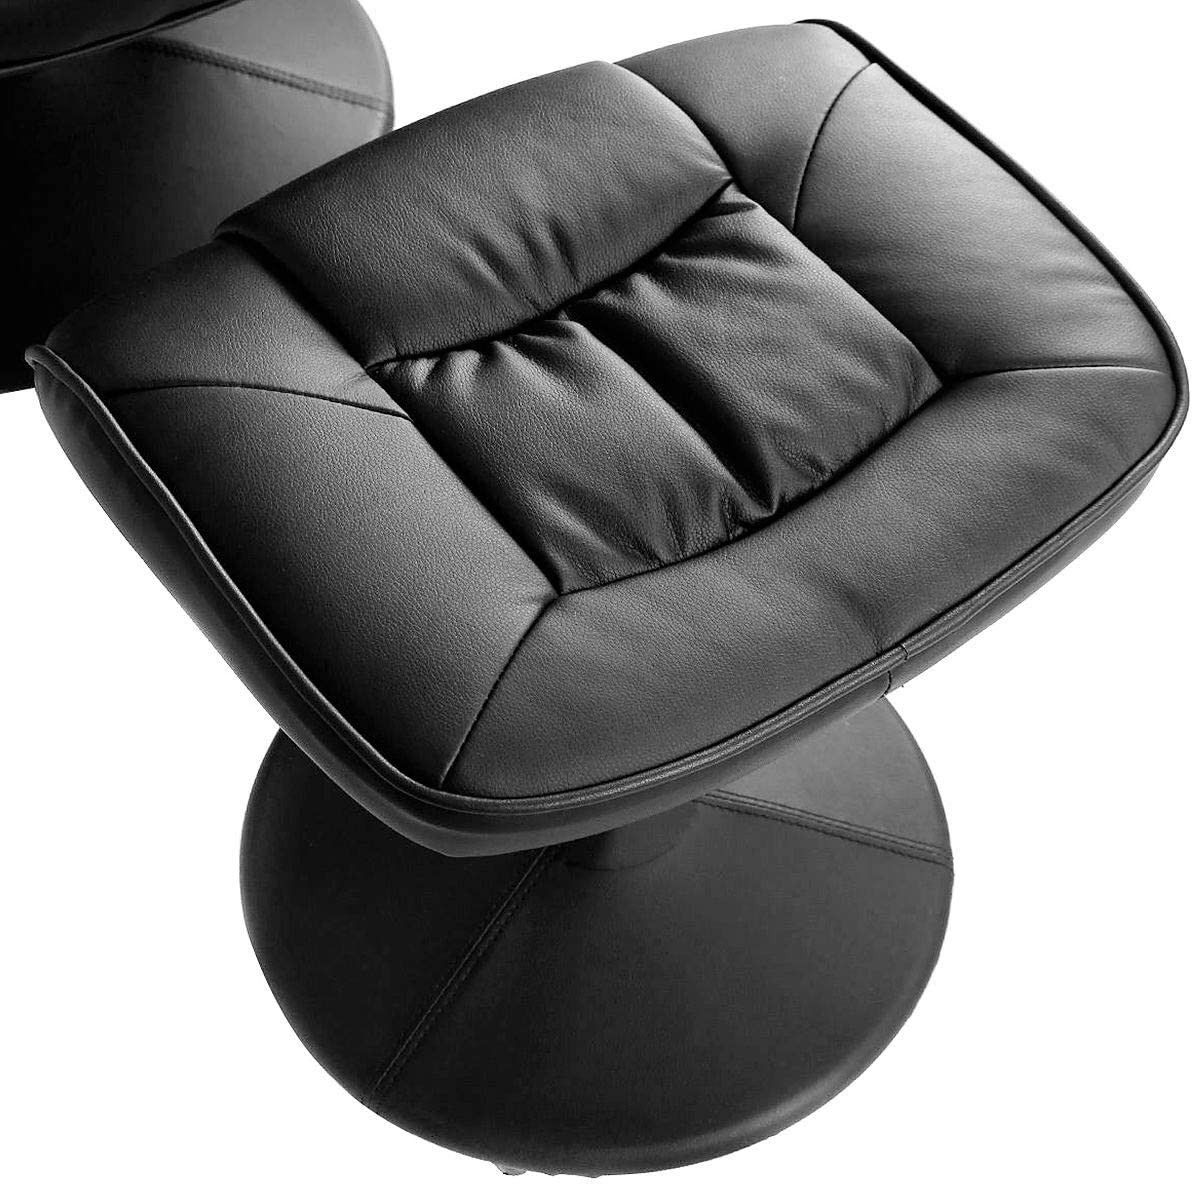 Swivel Recliner Chair, Leather Lounge Armchair Recliner, 360 Degree Swivel Overstuffed Padded Seat w/ Footrest Stool Ottoman Set